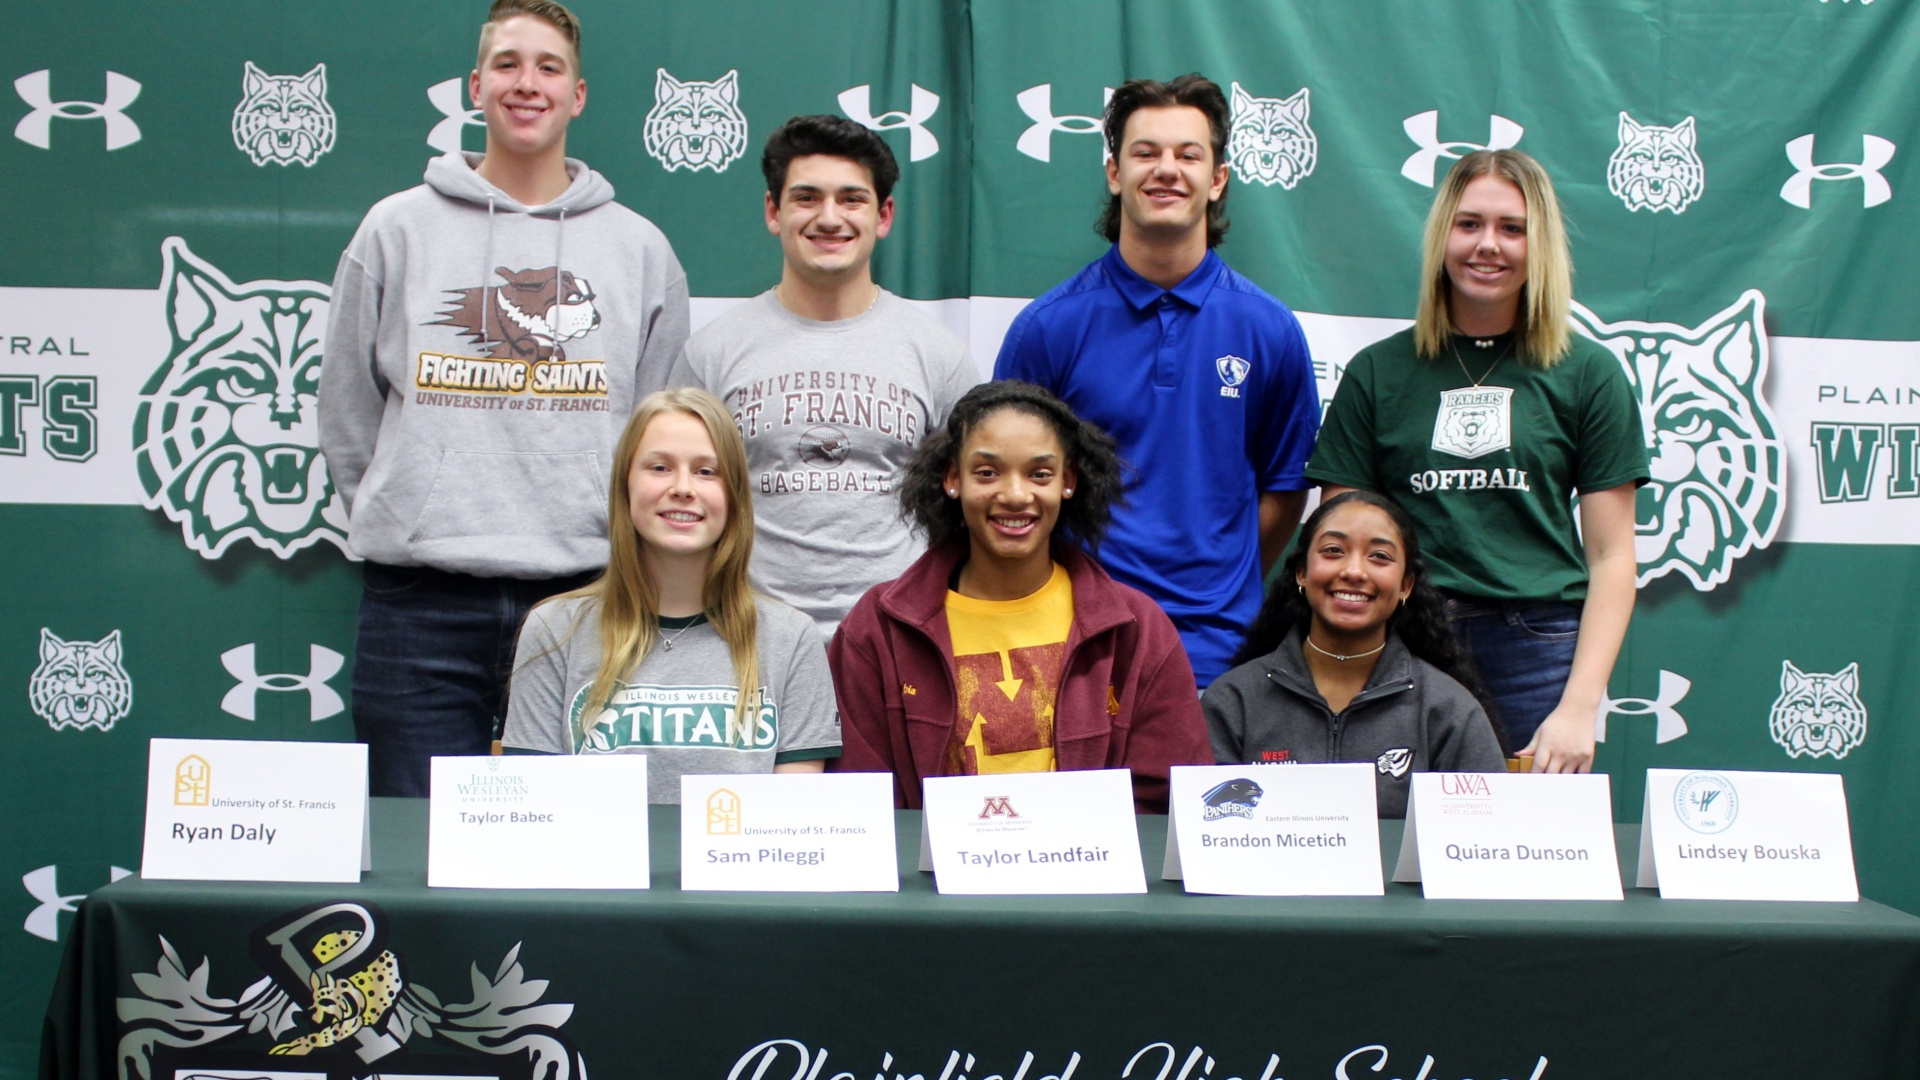 Student athletes sign letters of intent to play collegiate sports